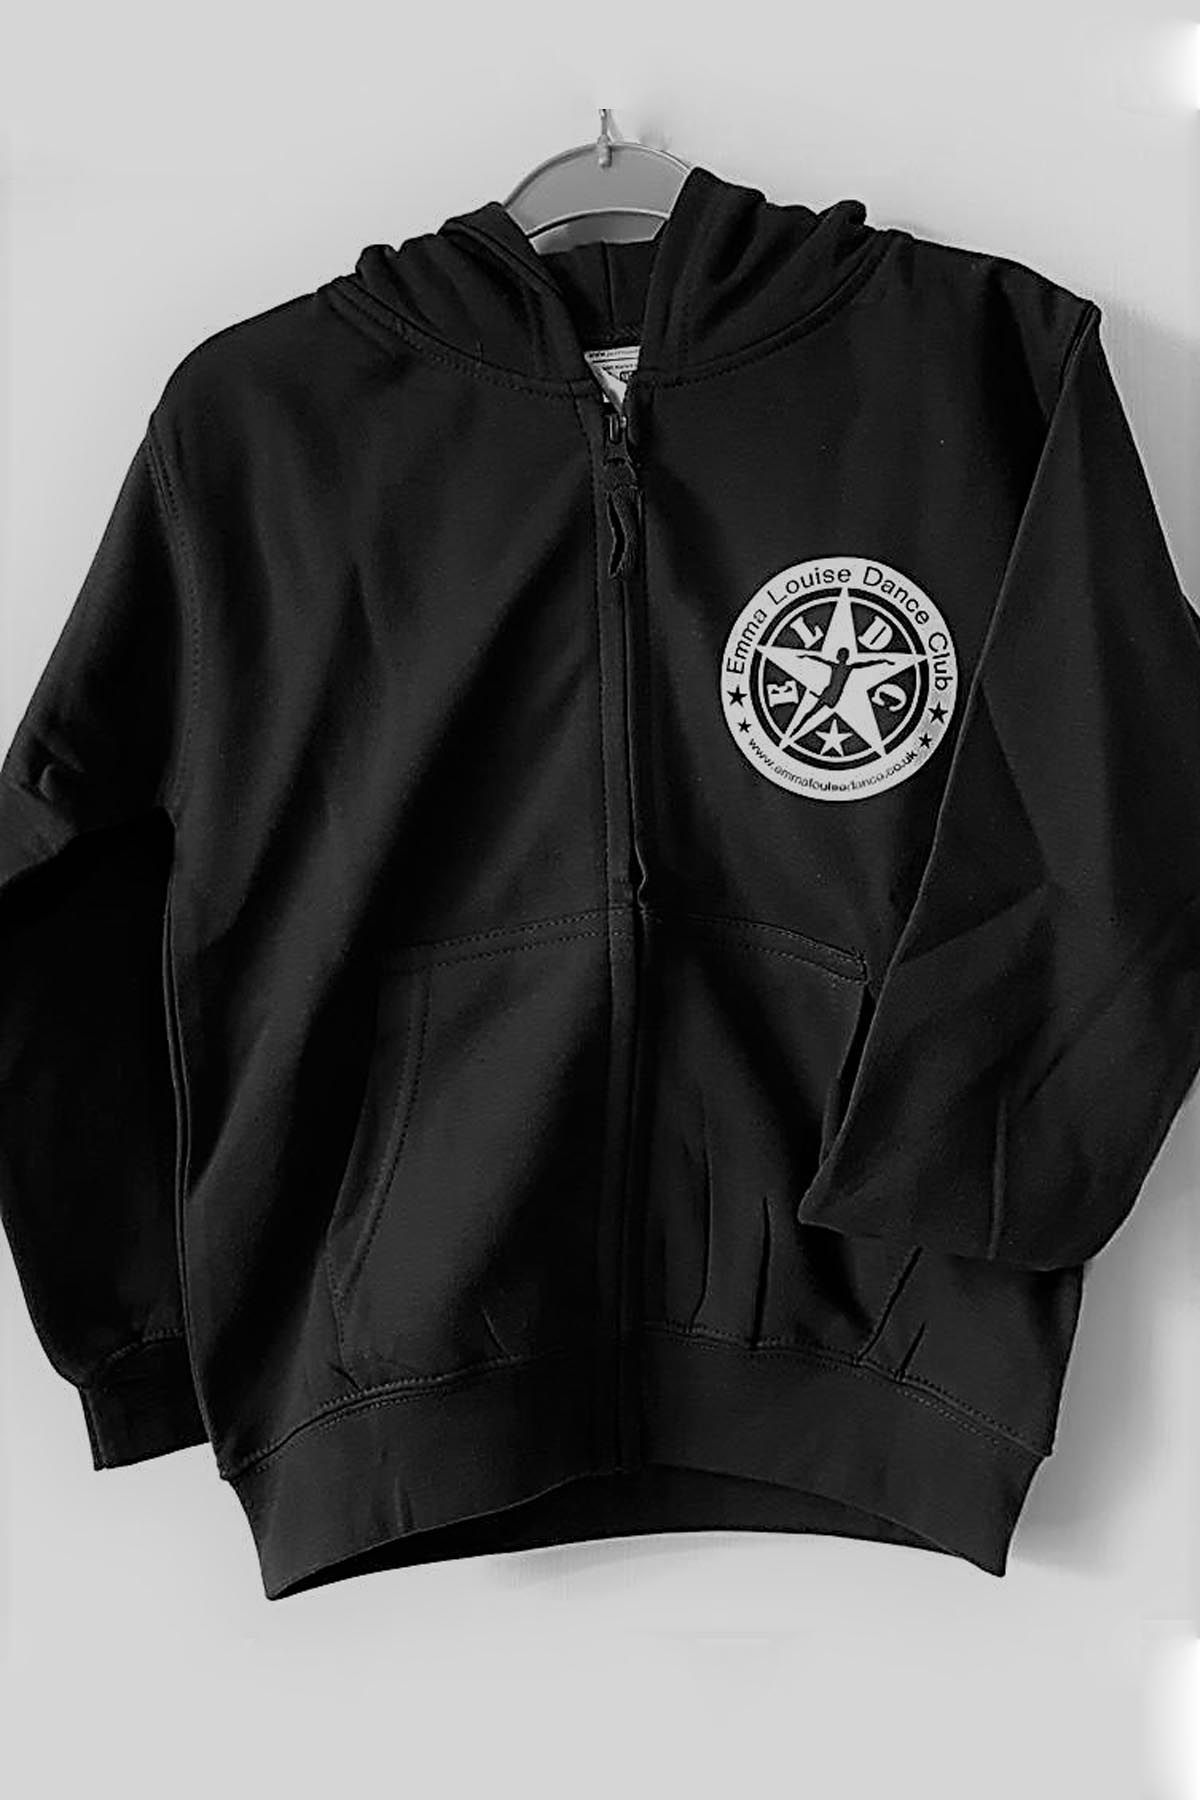 Uniform ELDC Black Zip Hoodie